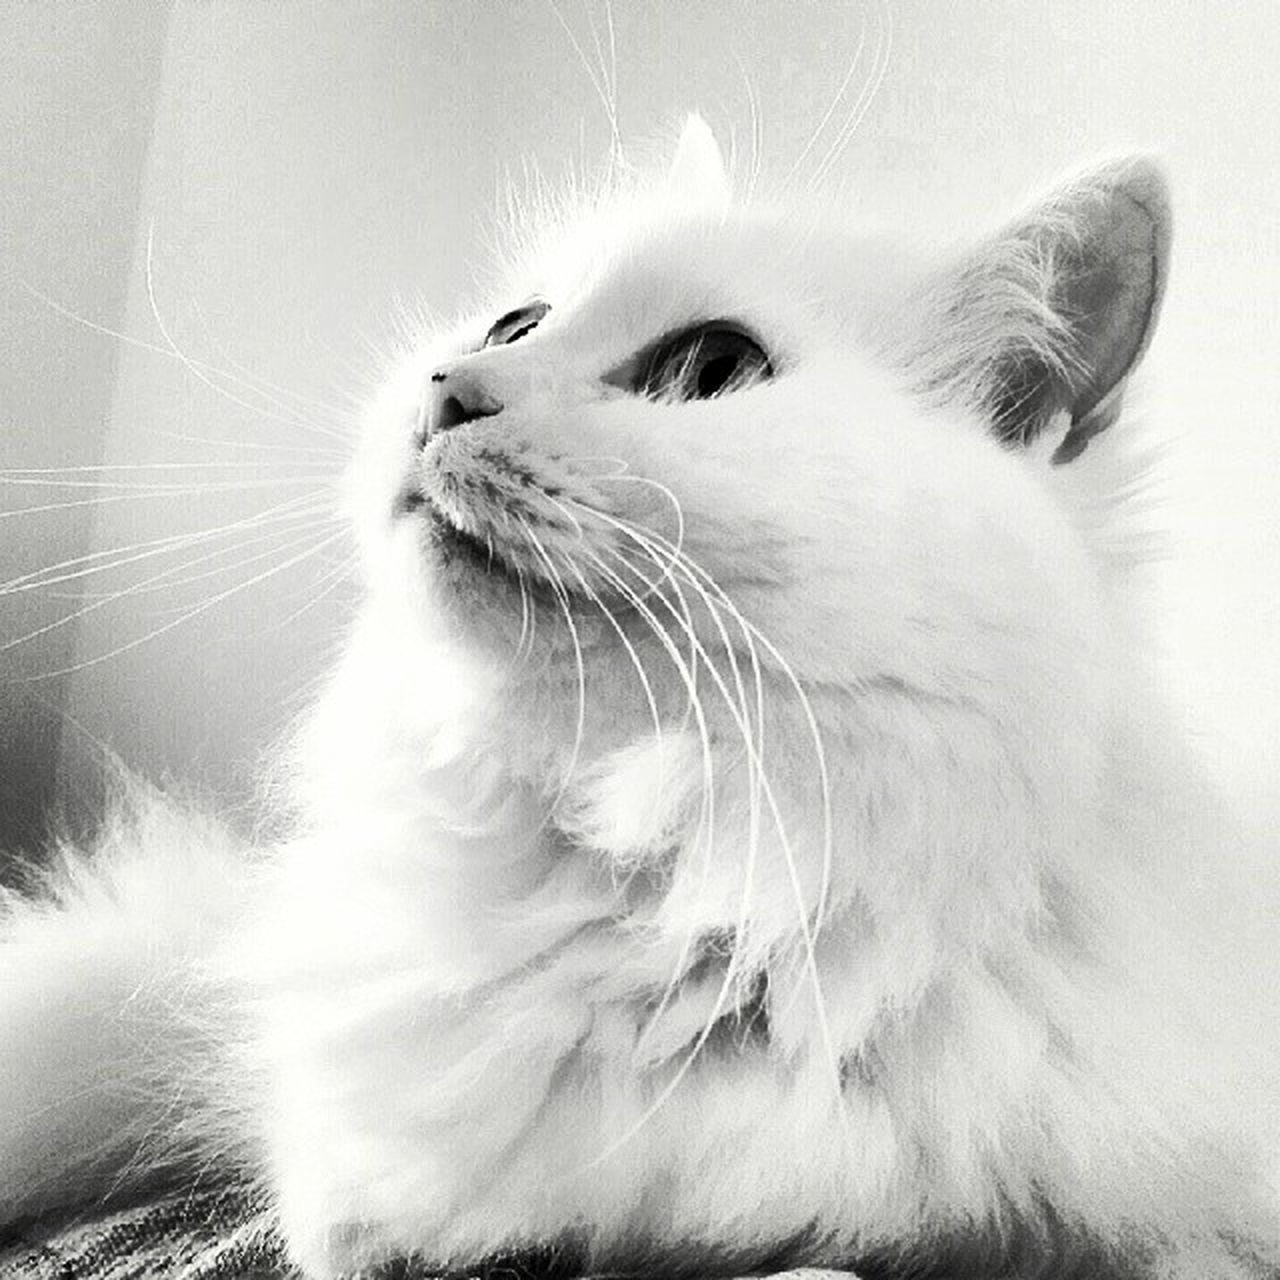 domestic cat, pets, mammal, domestic animals, one animal, whisker, animal themes, feline, animal hair, close-up, no people, indoors, day